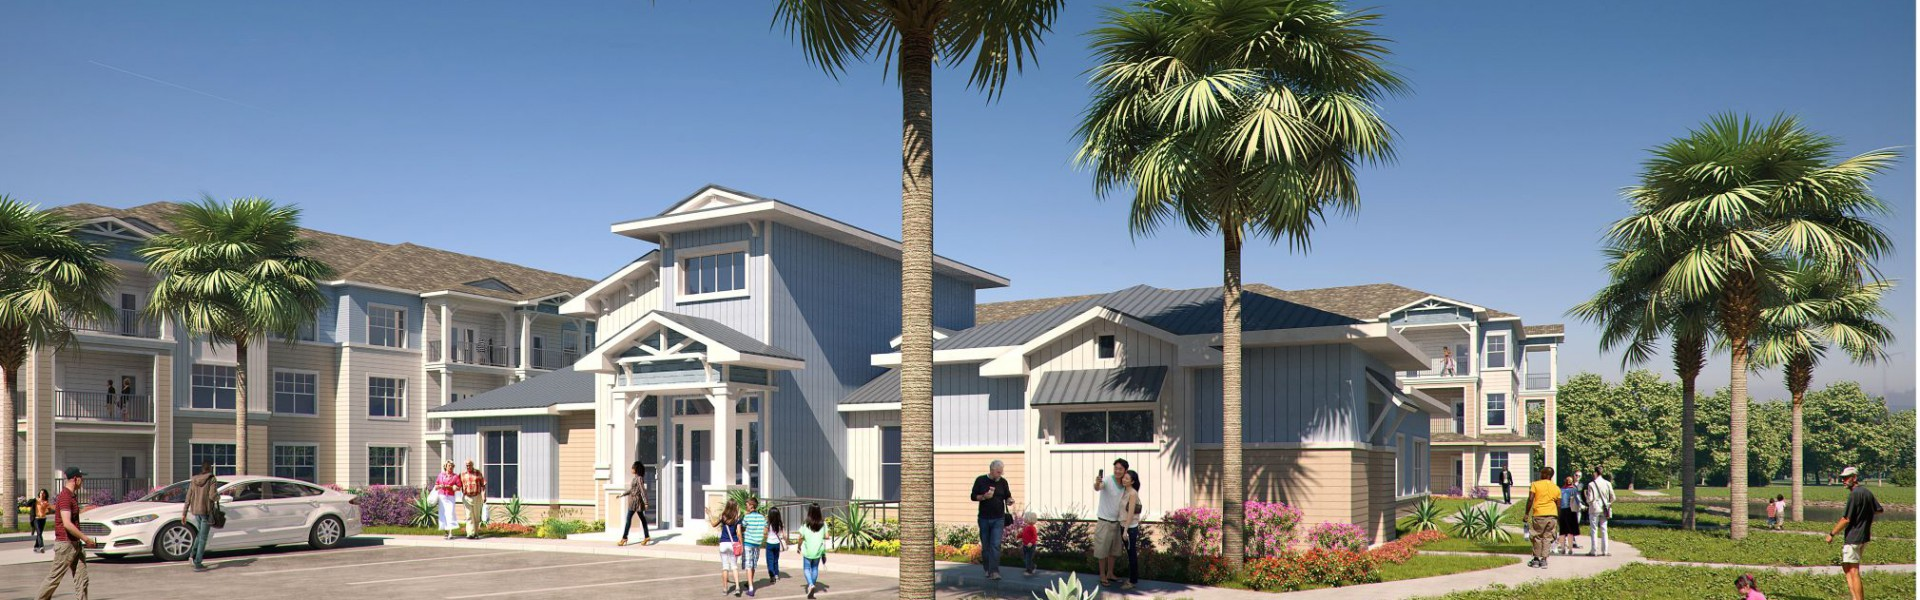 Palladium Port Aransas - Occupancy Summer 2021!